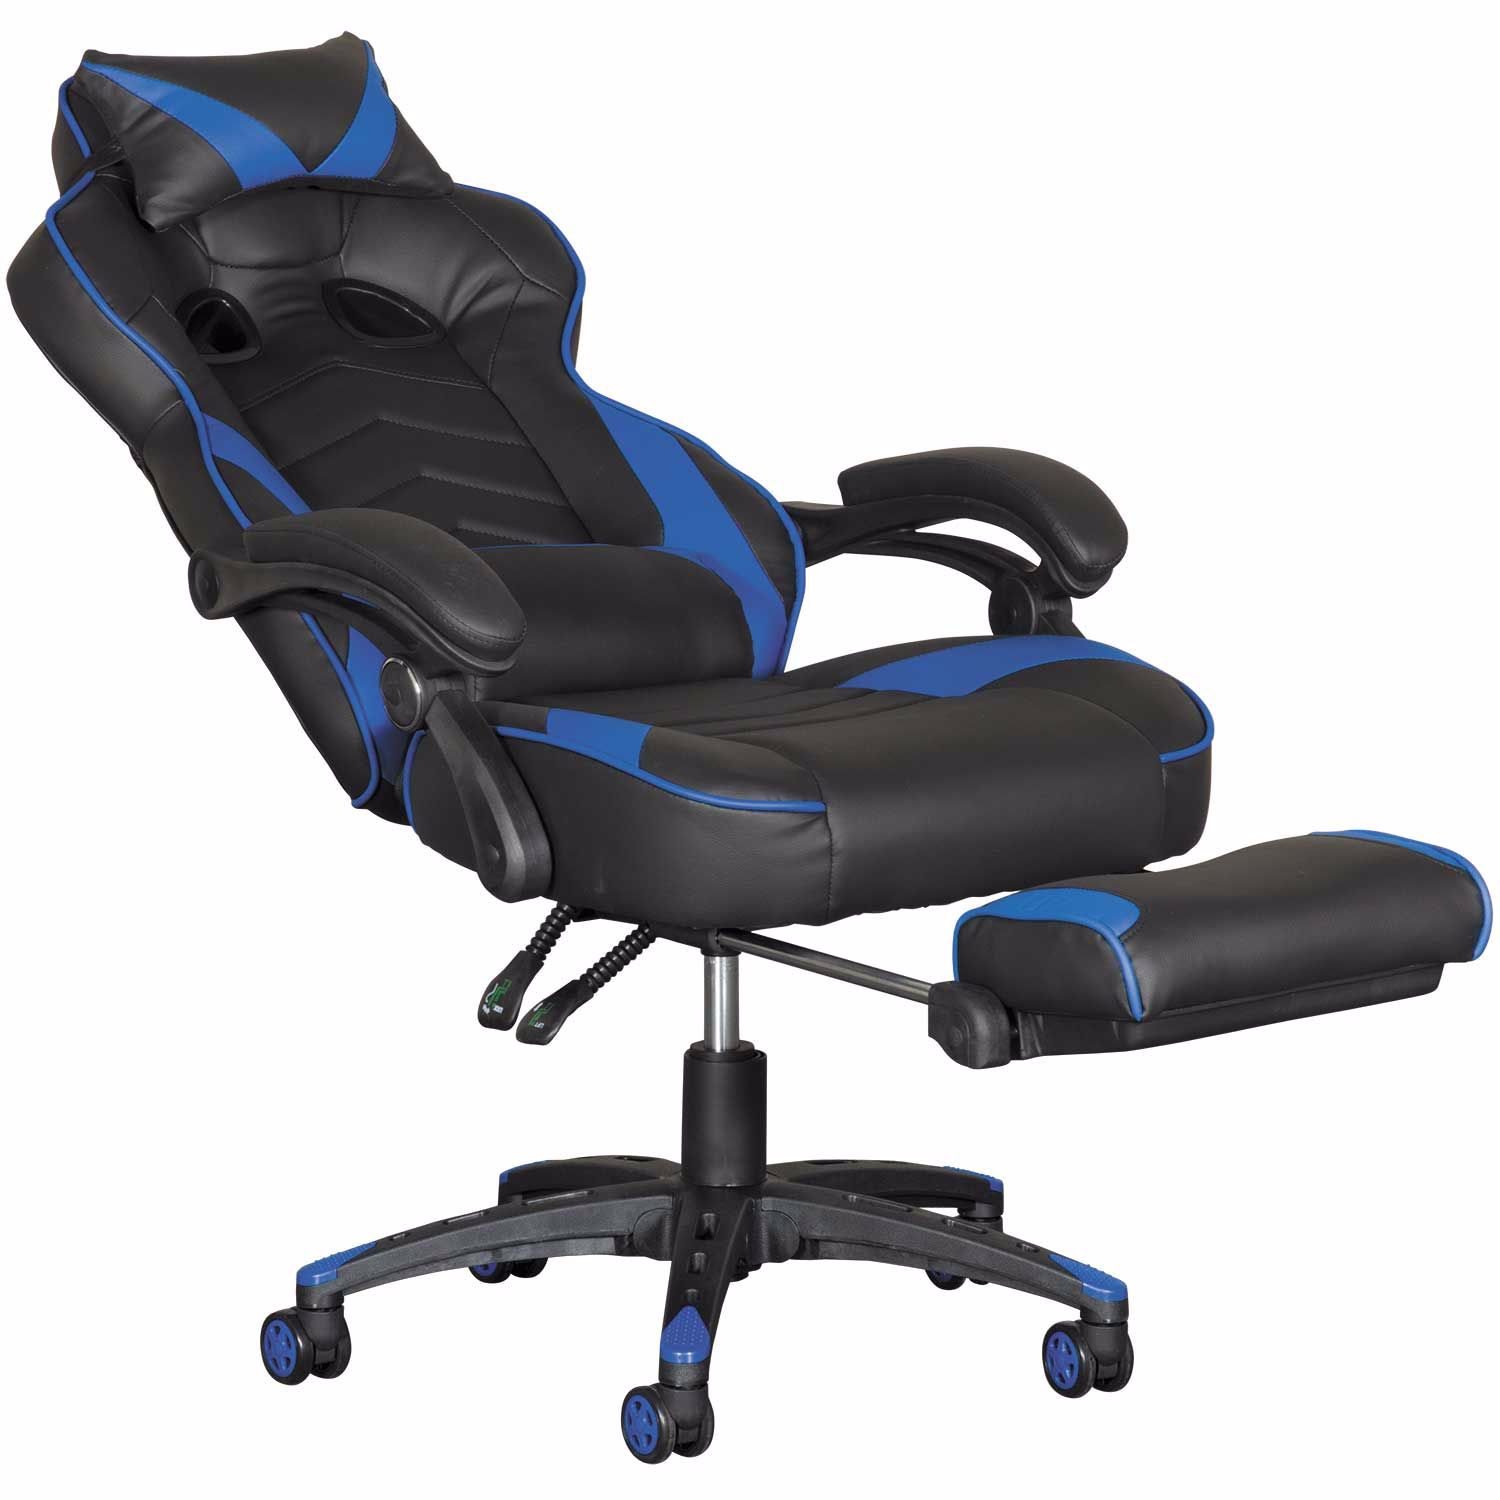 Miraculous Revolution Blue Gaming Chair With Footrest Bralicious Painted Fabric Chair Ideas Braliciousco